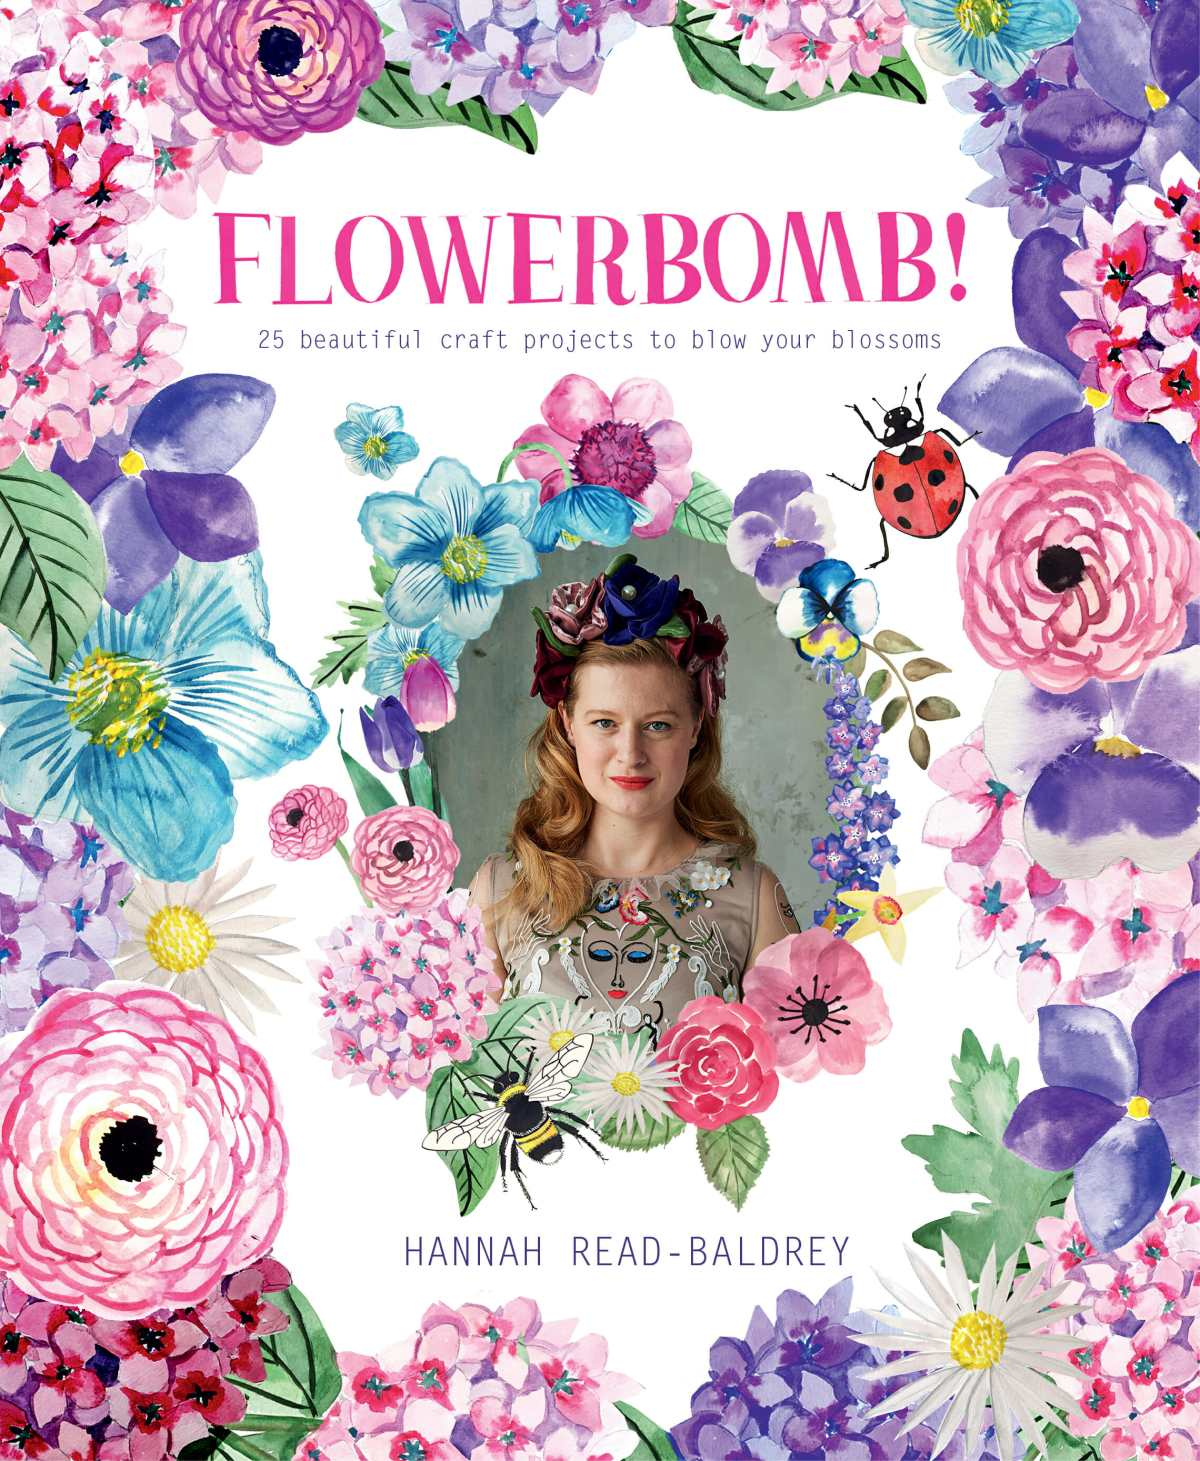 Book Review – FLOWERBOMB!